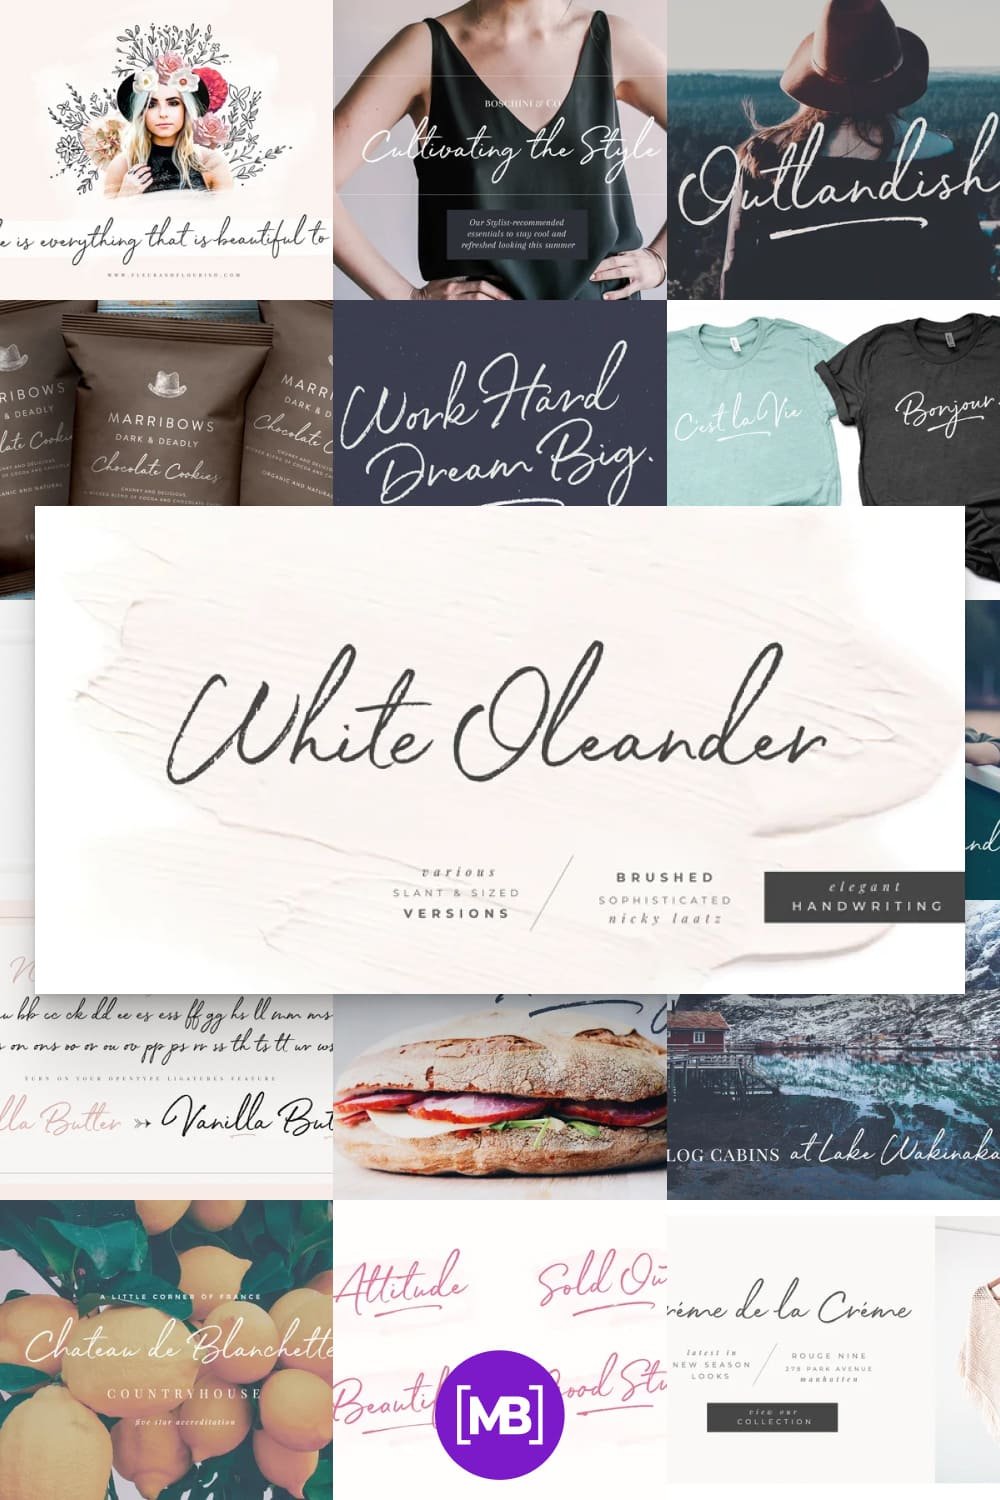 White Oleander is a stylish handwritten font, with subtle texture imperfections, to appear as authentic as possible while remaining clearly legible in your projects.